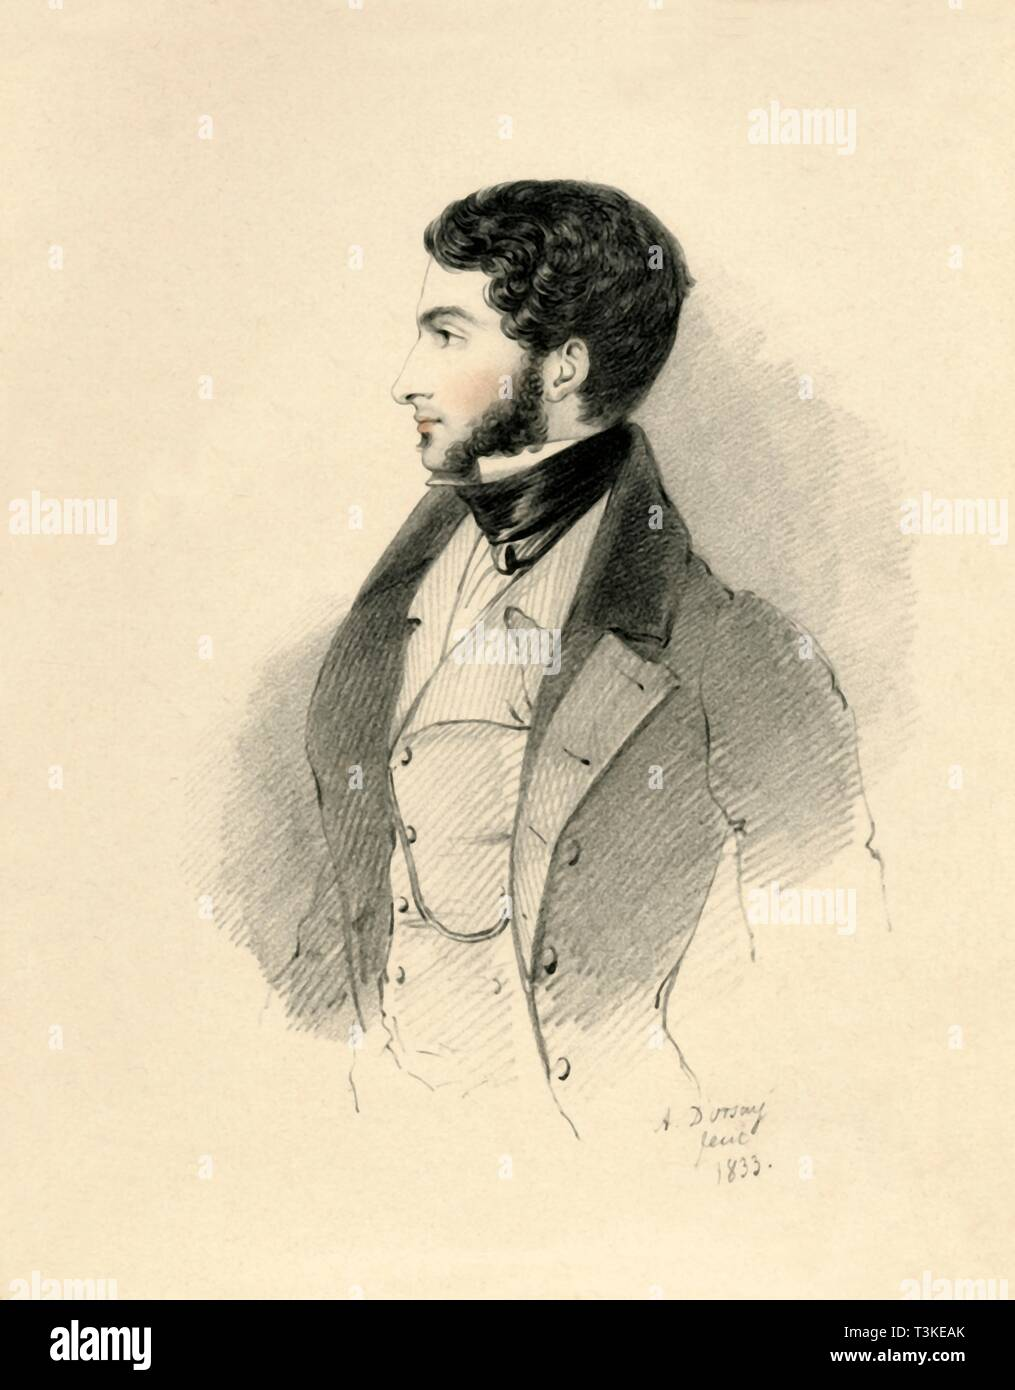 """'The Honourable George Byng M.P. afterwards Viscount Enfield', 1833. Portrait of George Stevens Byng, 2nd Earl of Strafford (1806-1886), British Whig politician and Comptroller of the Household. From """"Portraits by Count D'Orsay"""", an album assembled by Lady Georgiana Codrington. [1850s] - Stock Image"""